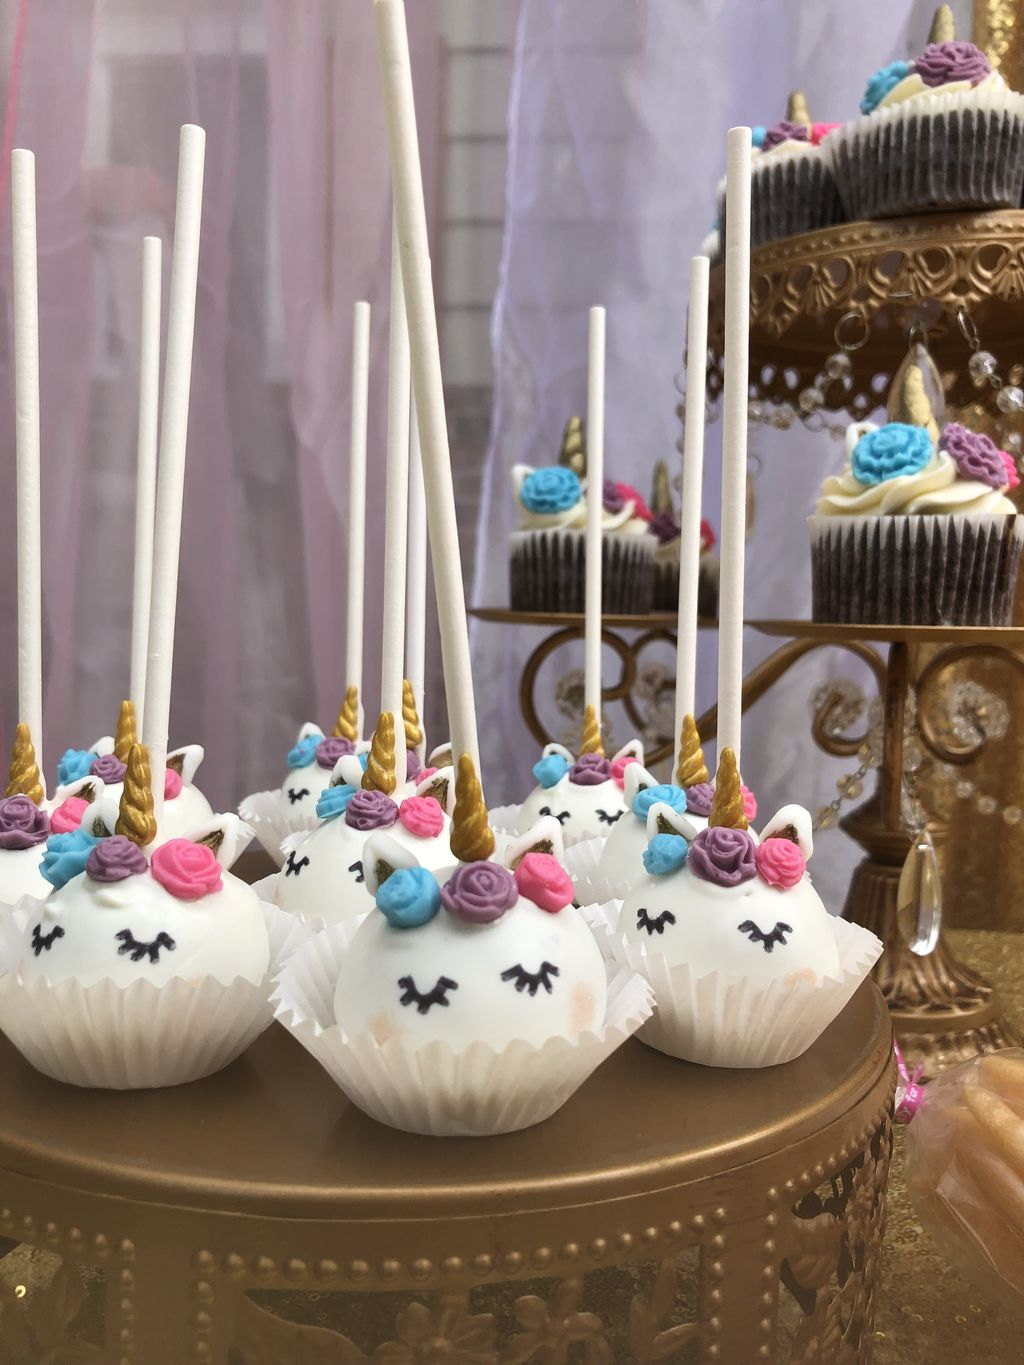 A unicorn birthday party for 200 guests